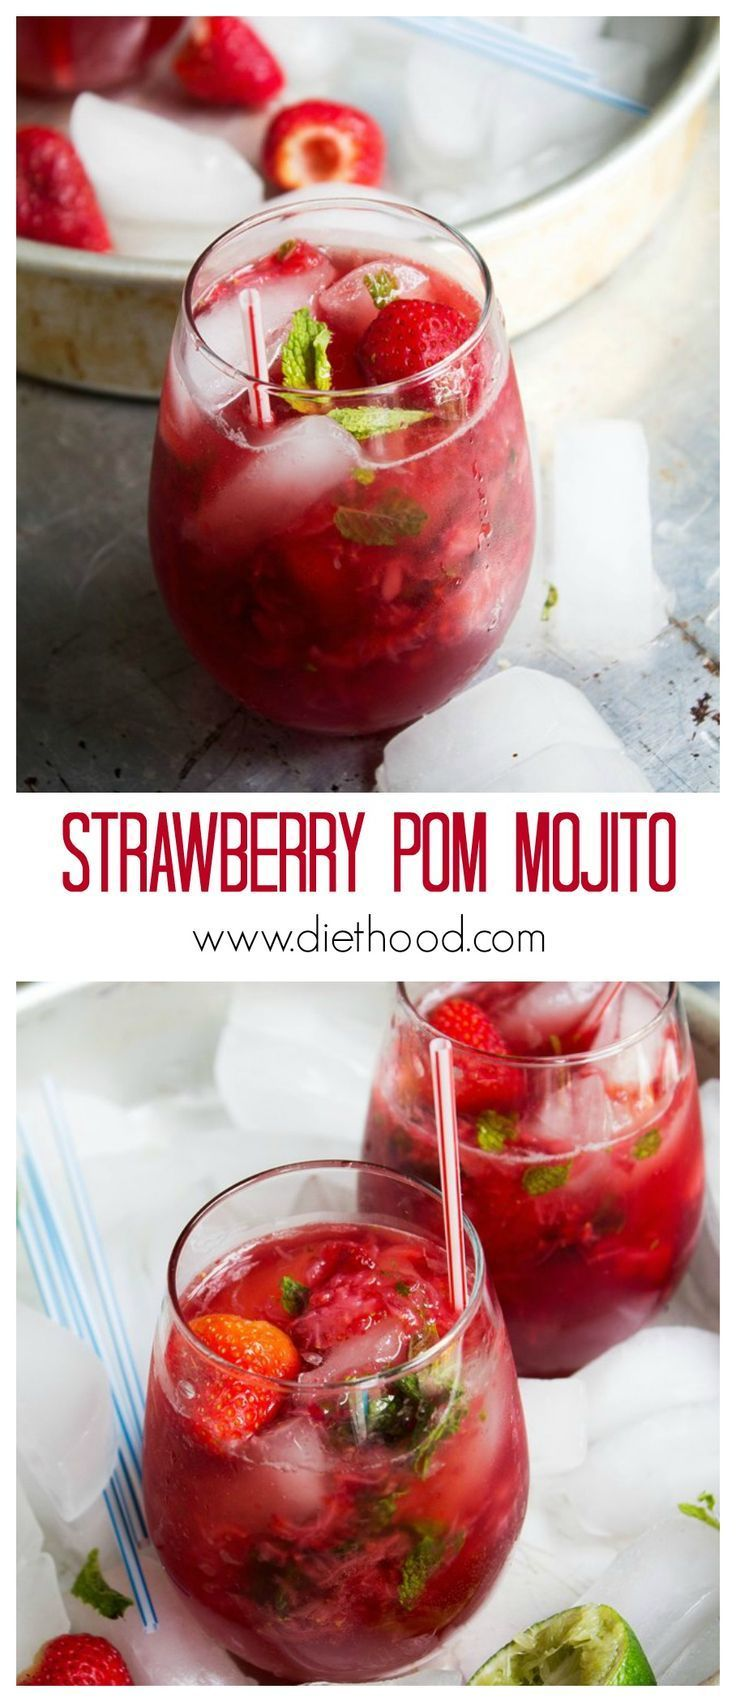 Strawberry Pom Mojito Www Diethood Com Refreshing Mojito Cocktail Made With Strawberries And Pomegranate Juice Cocktail Stra Food Recipes Summer Drinks